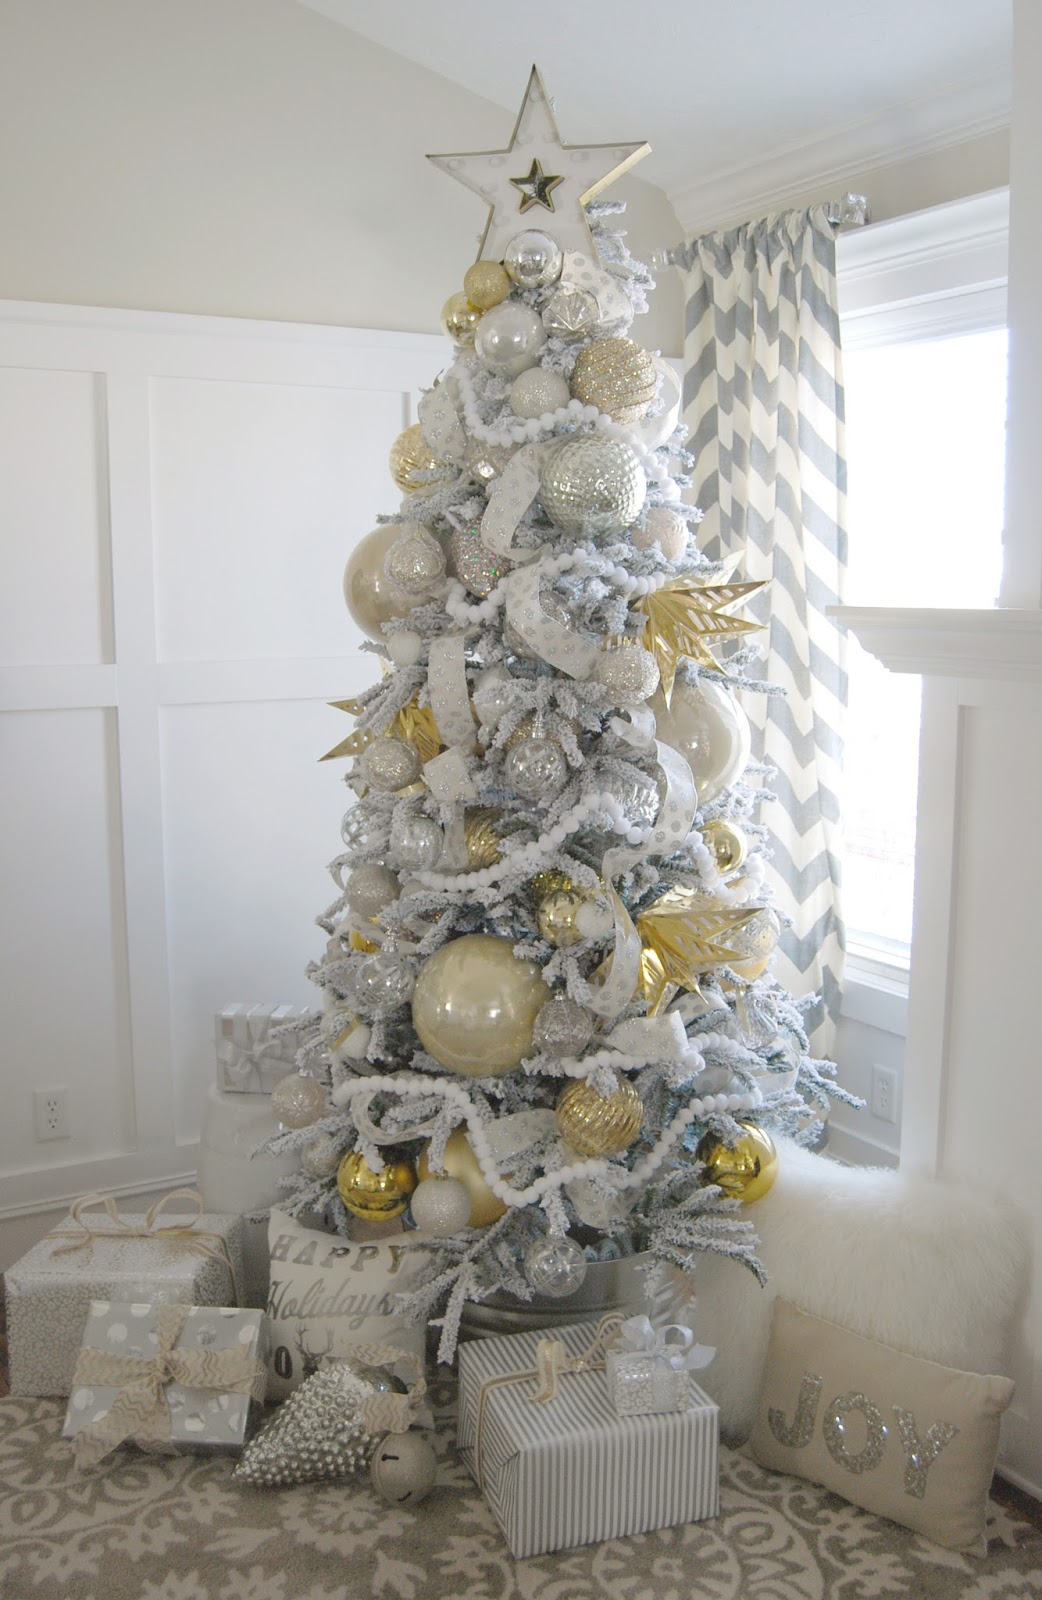 Christmas tree decorations silver and gold - Silver And Gold Christmas Tree